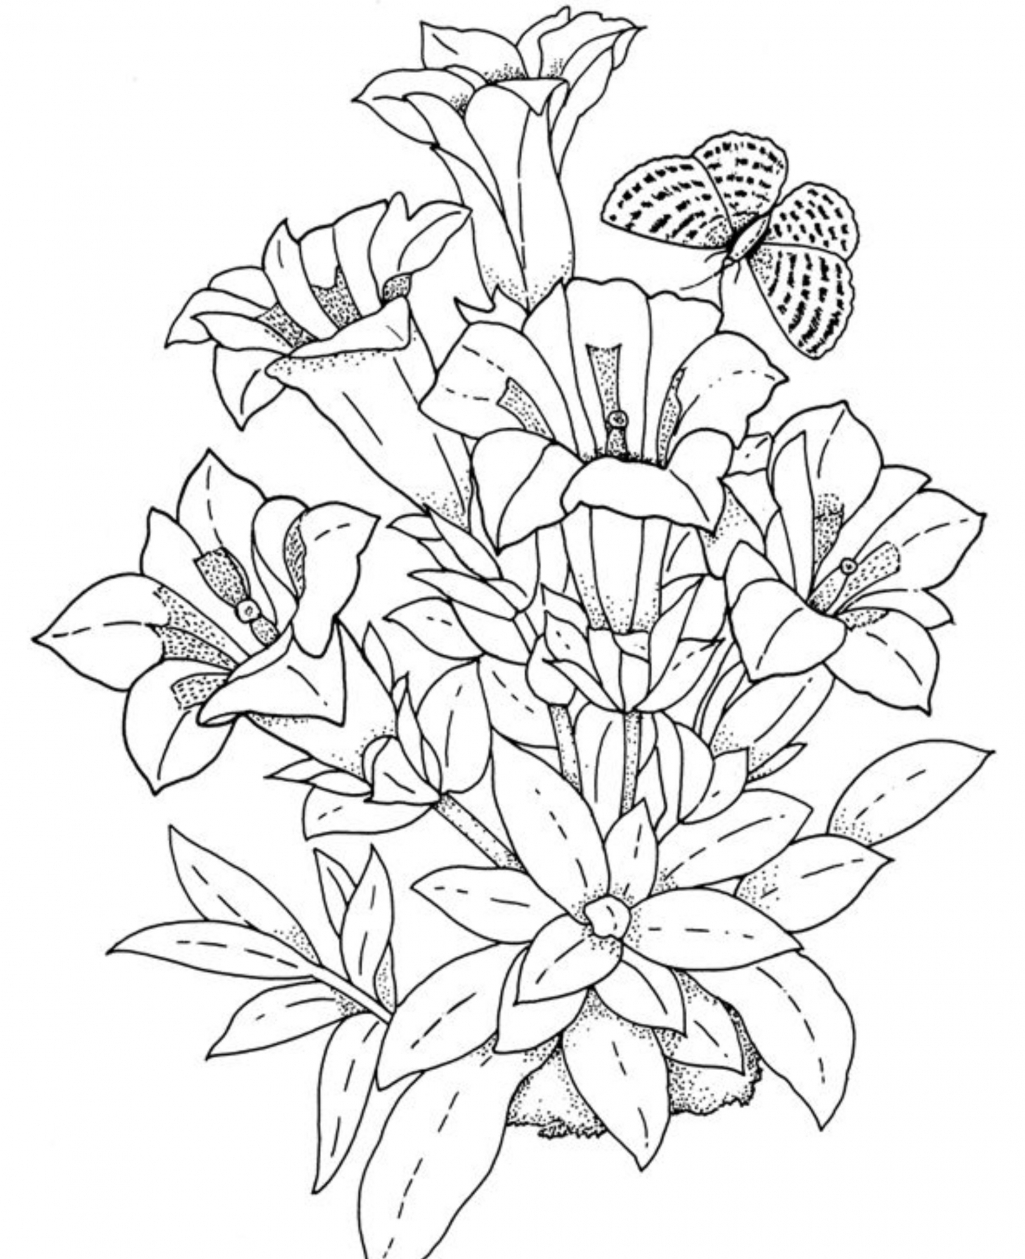 flowers coloring sheet detailed flower coloring pages to download and print for free sheet flowers coloring